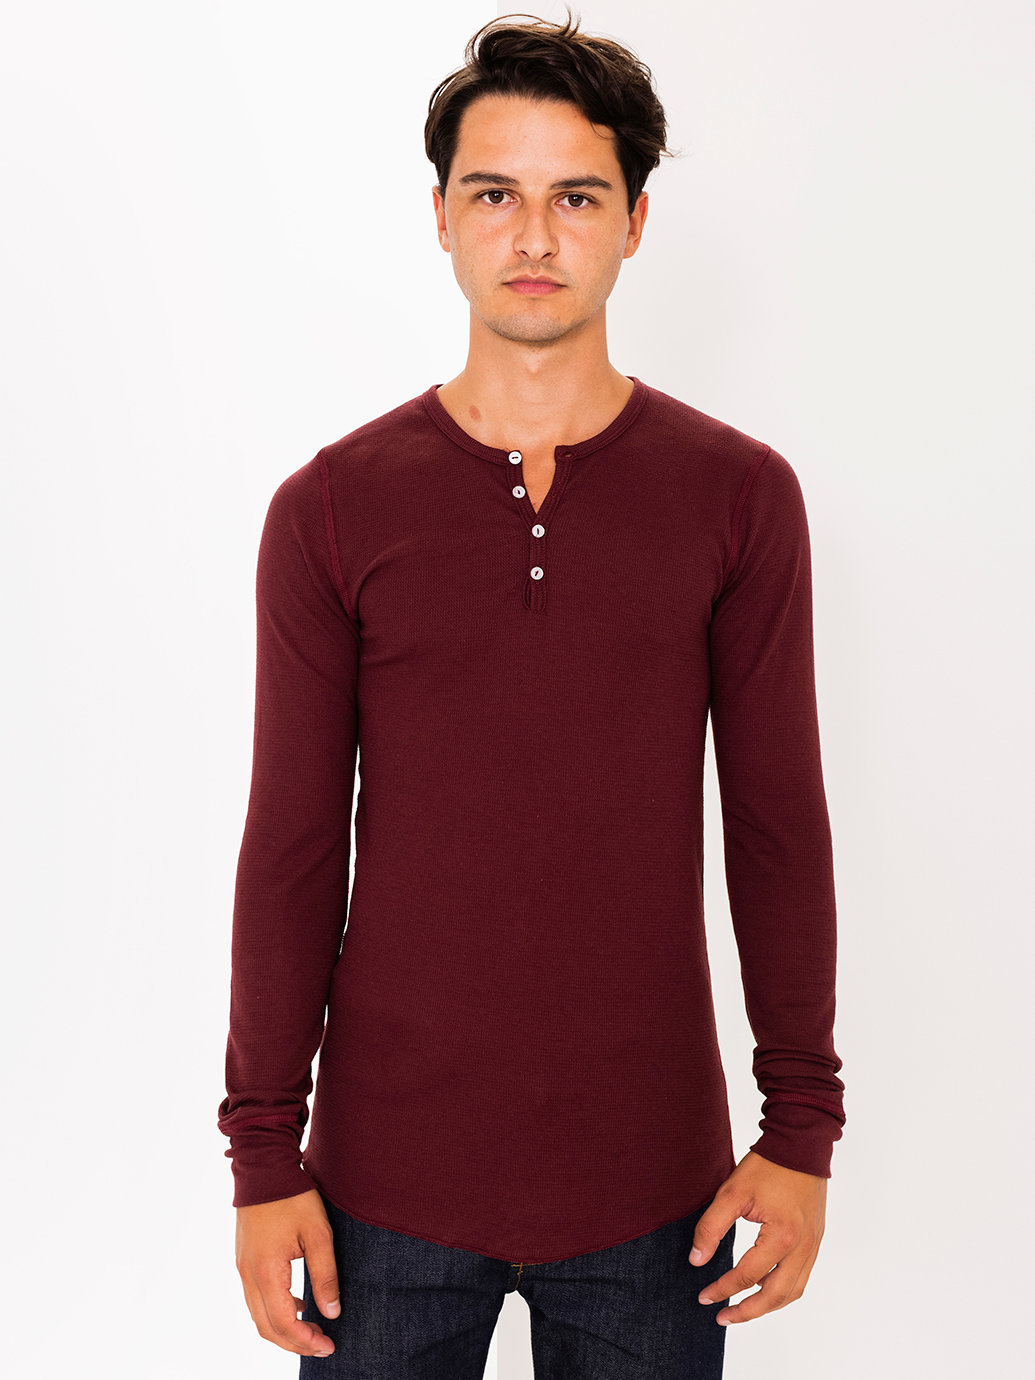 American apparel baby thermal henley long sleeve t shirt for Men s thermal henley long sleeve shirts